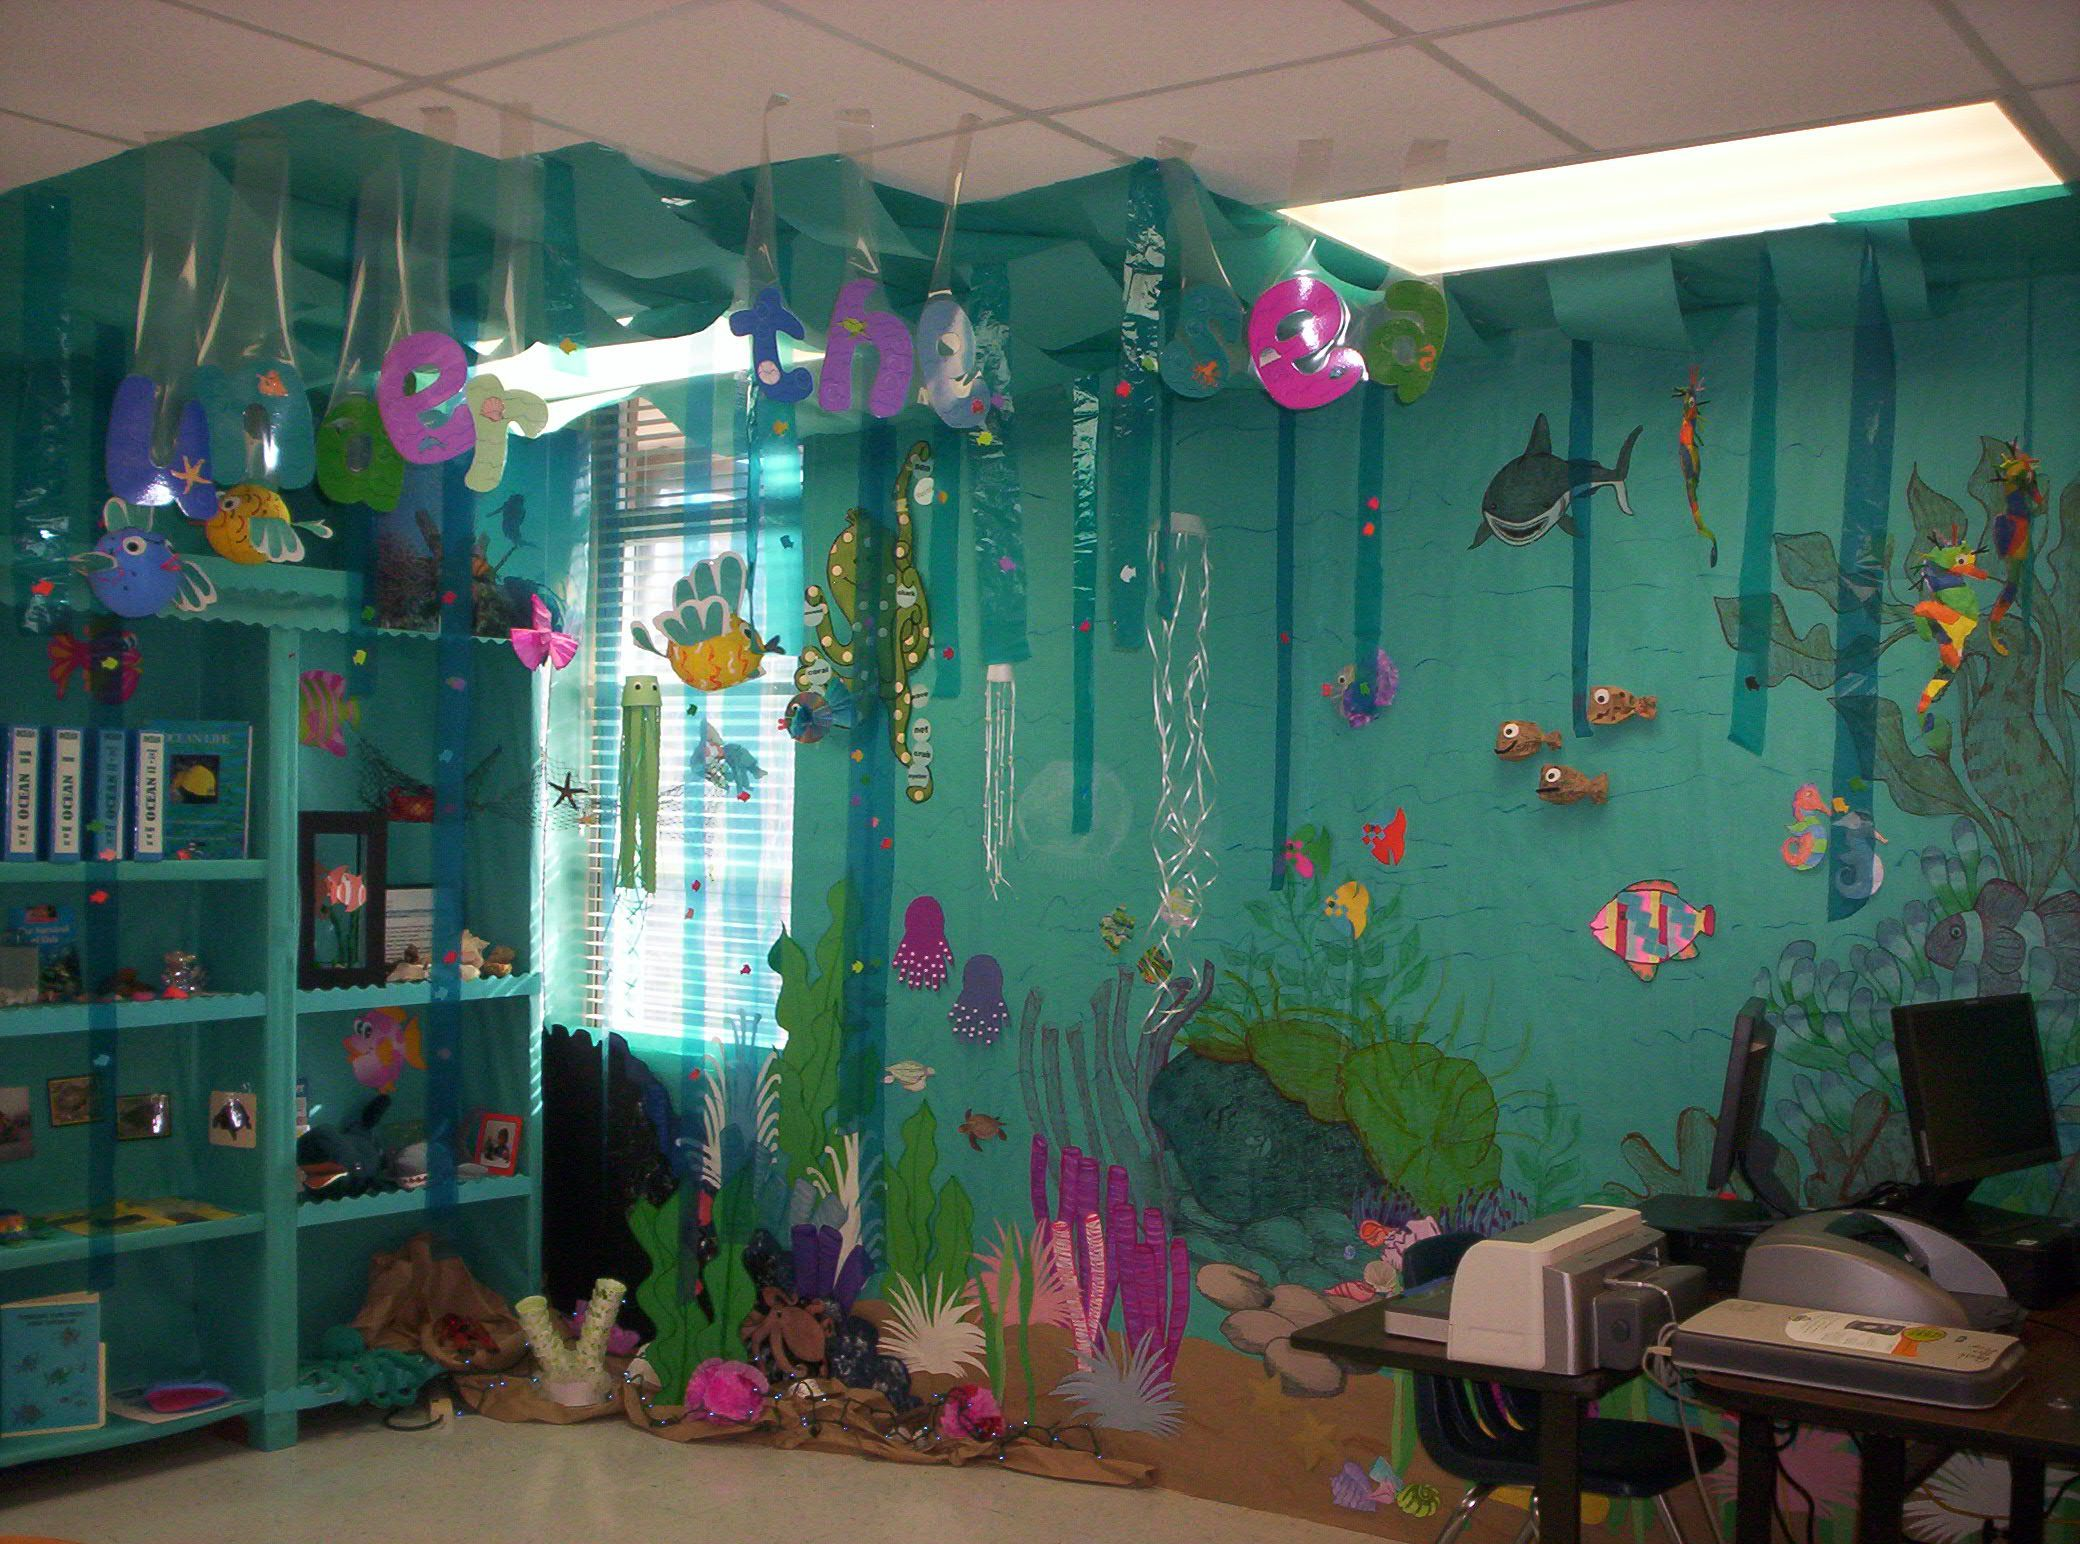 Classroom Ideas Display : Under the sea classroom theme ideas